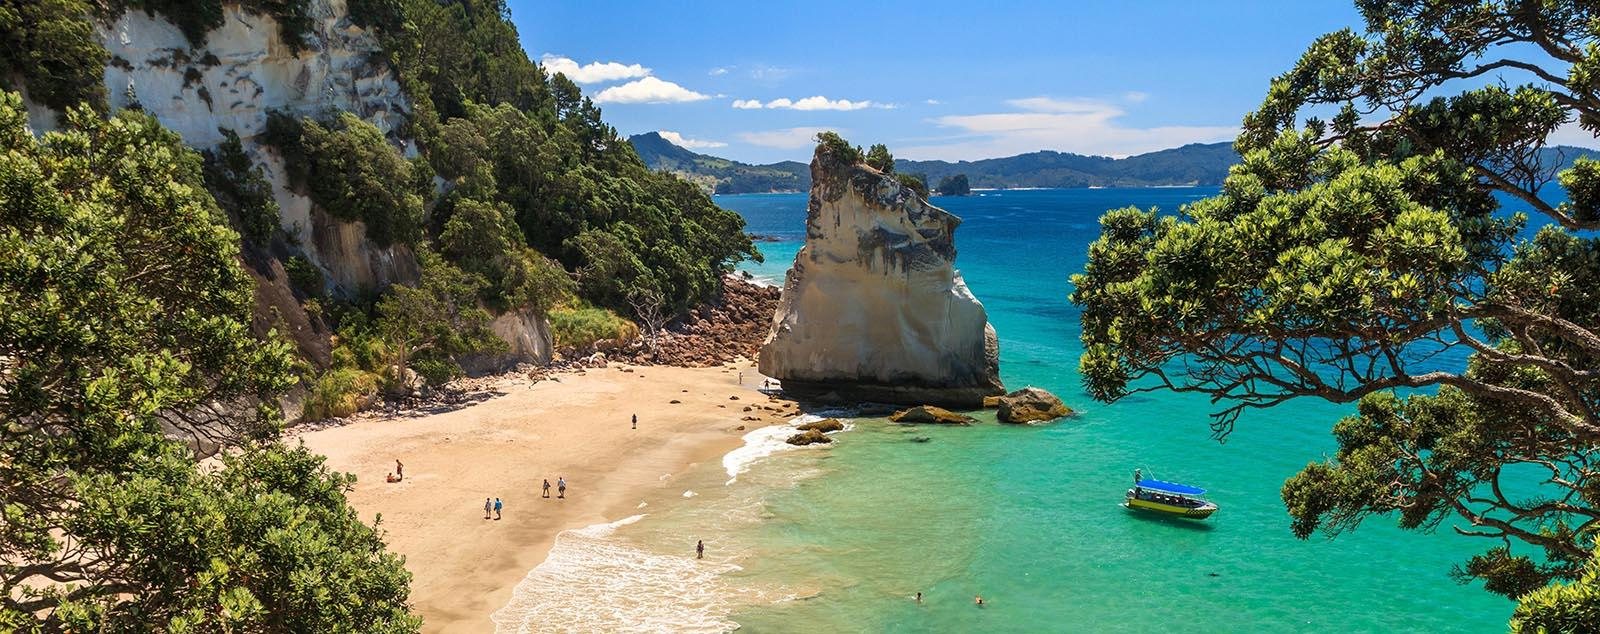 Sep 30,  · New Zealand: Best Car Rental in New Zealand: GO Rentals - See 36 traveller reviews, 1, candid photos, and great deals for New Zealand, at TripAdvisor. New Zealand. New Zealand Tourism New Zealand Accommodation New Zealand Bed and Breakfast New Zealand Holiday Rentals5/5.